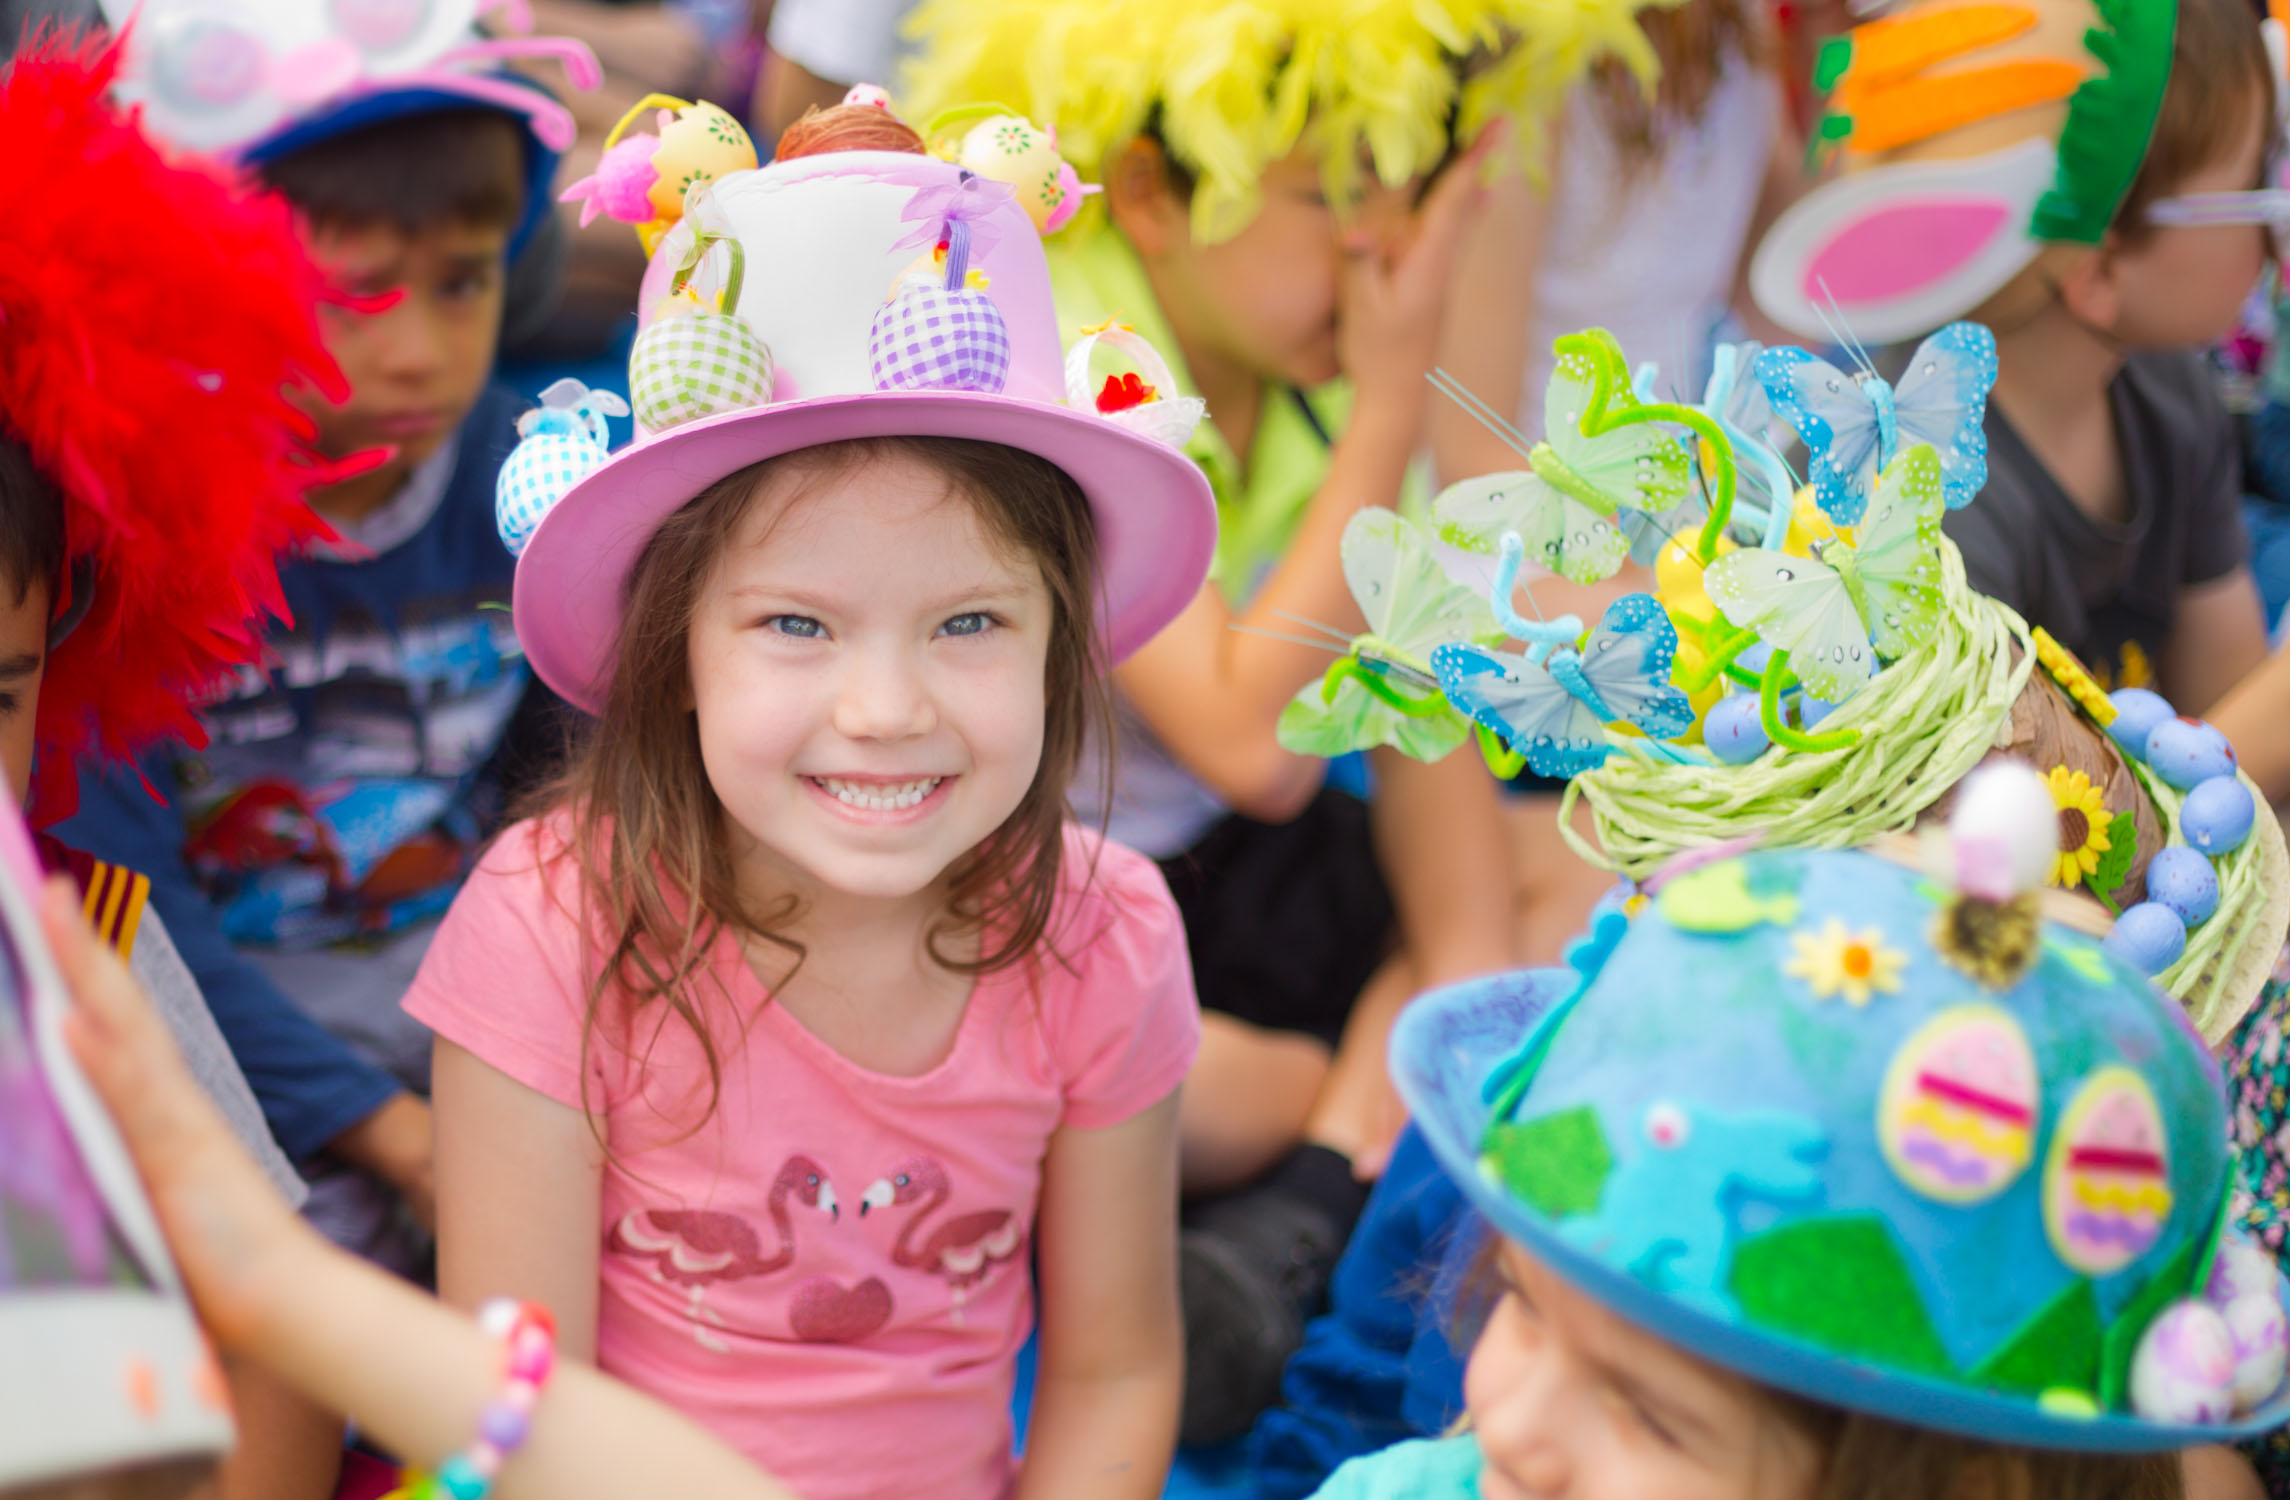 Most women have more productive things to do with their time than making Easter bonnets.